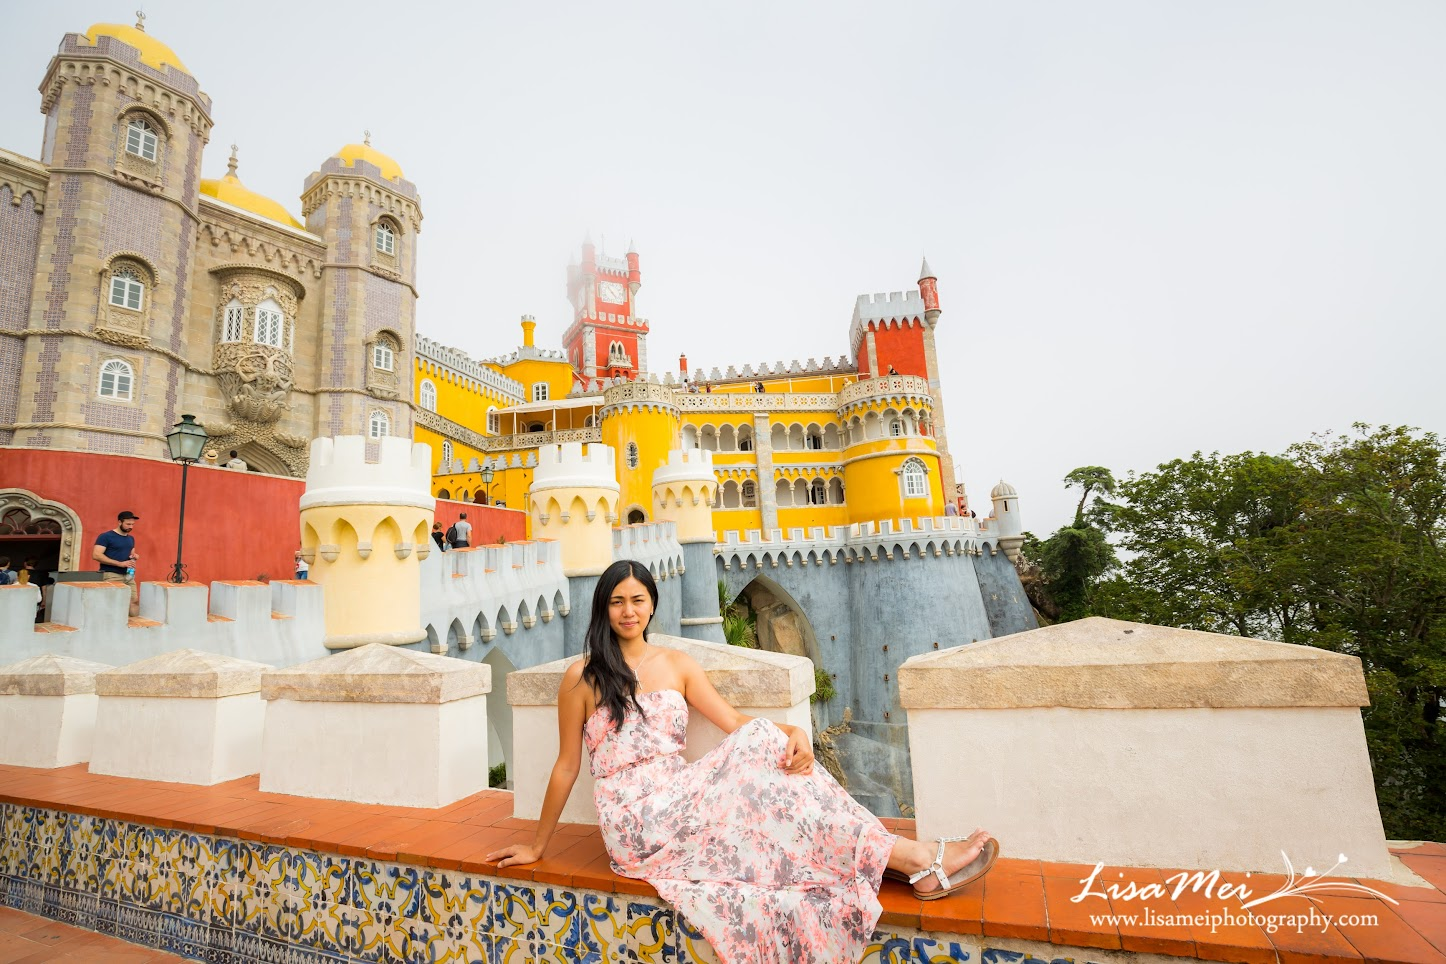 The colorful up in the clouds palace - Pena Palace, Sintra